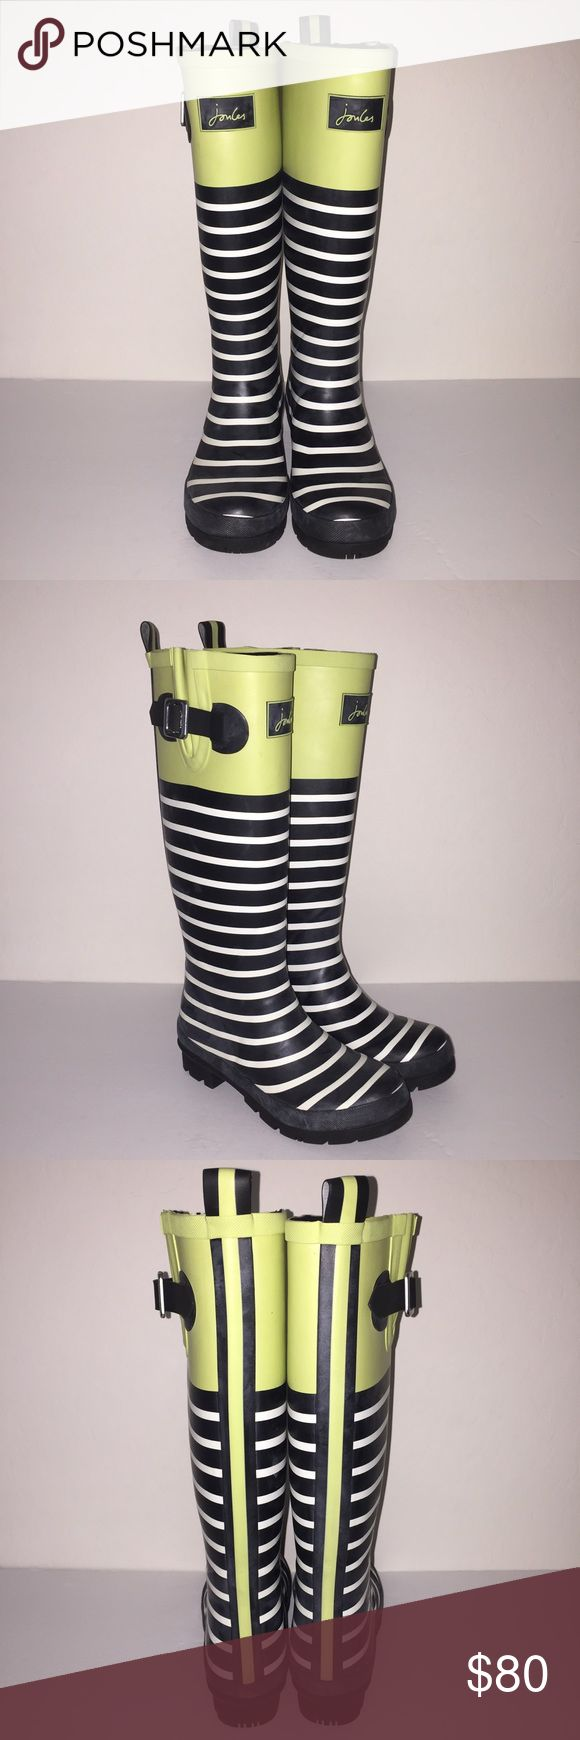 Joules Welly Print Stripe Rainboots sz 5 New no box no trades Joules Shoes Winter & Rain Boots